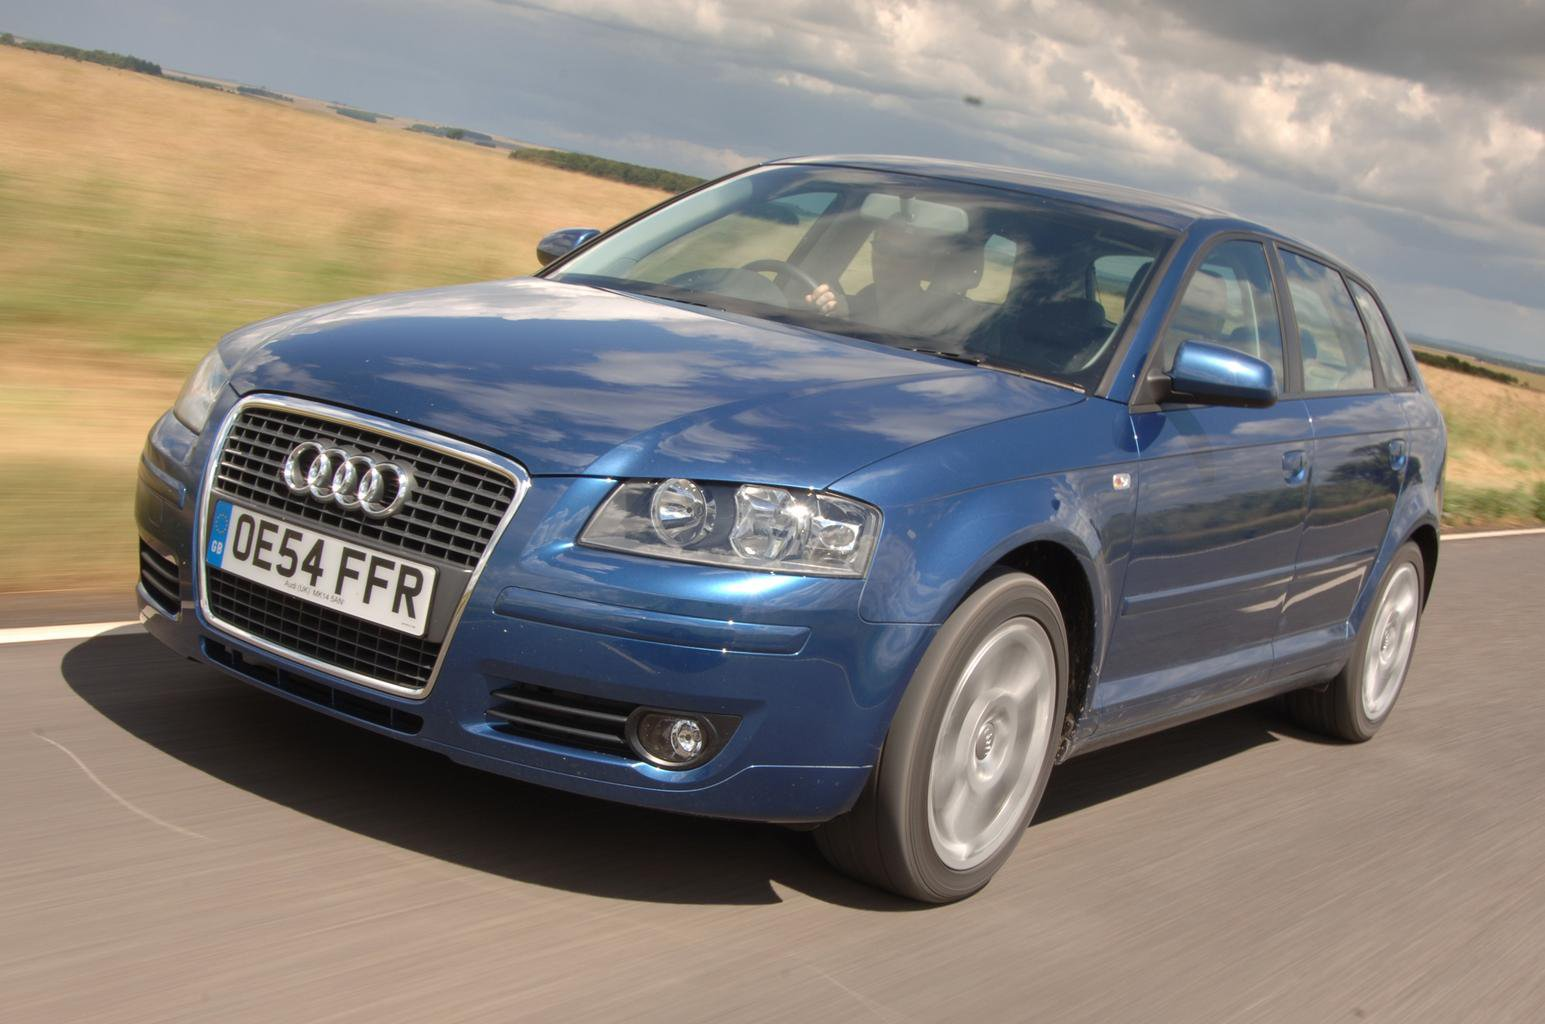 10 reasons to buy an Audi A3